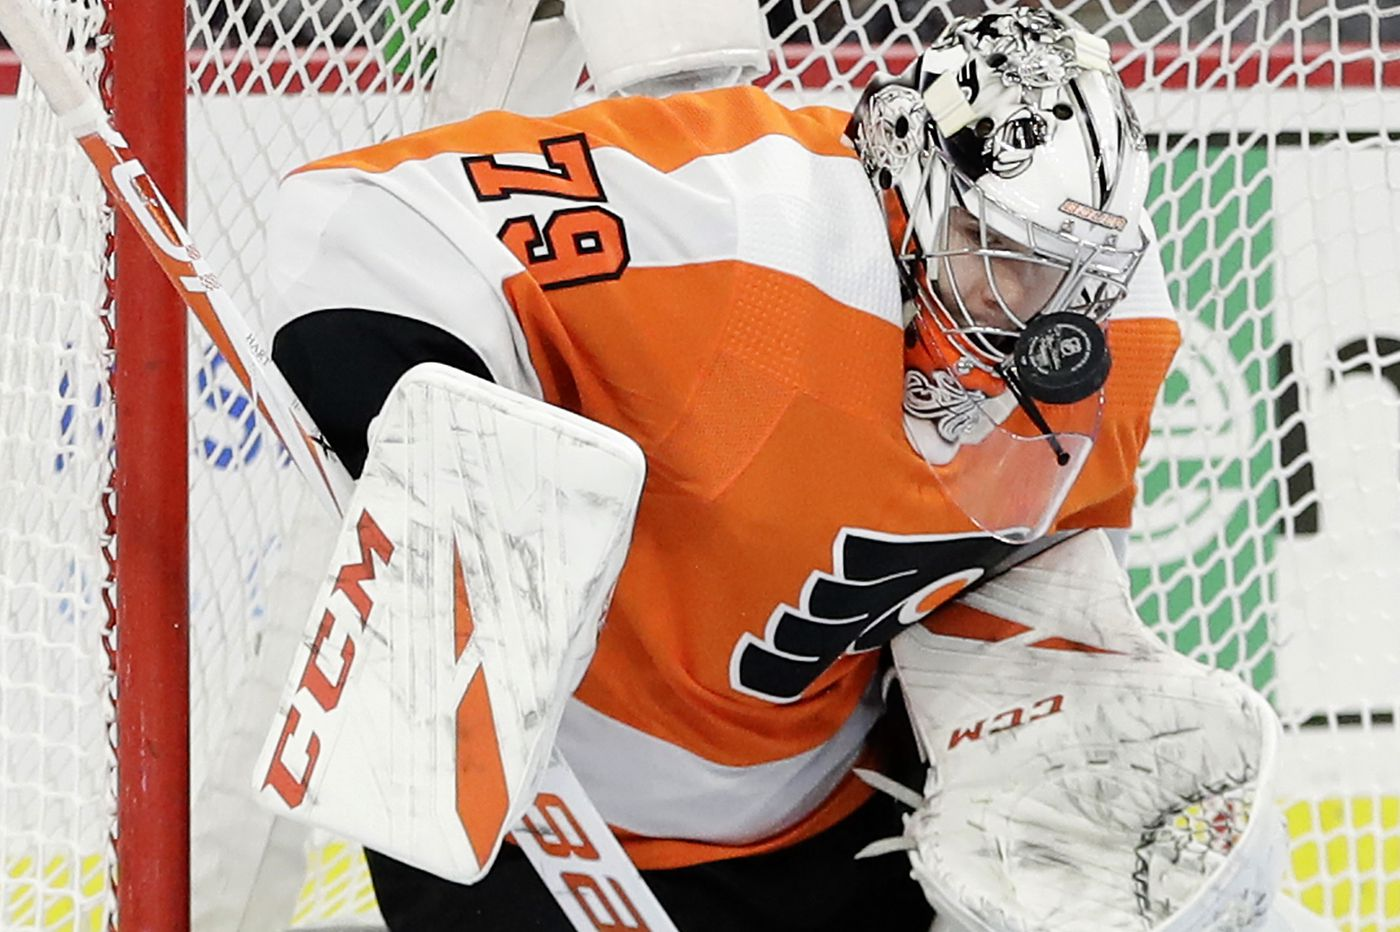 Flyers are winners (and losers) in NHL's unique playoff format